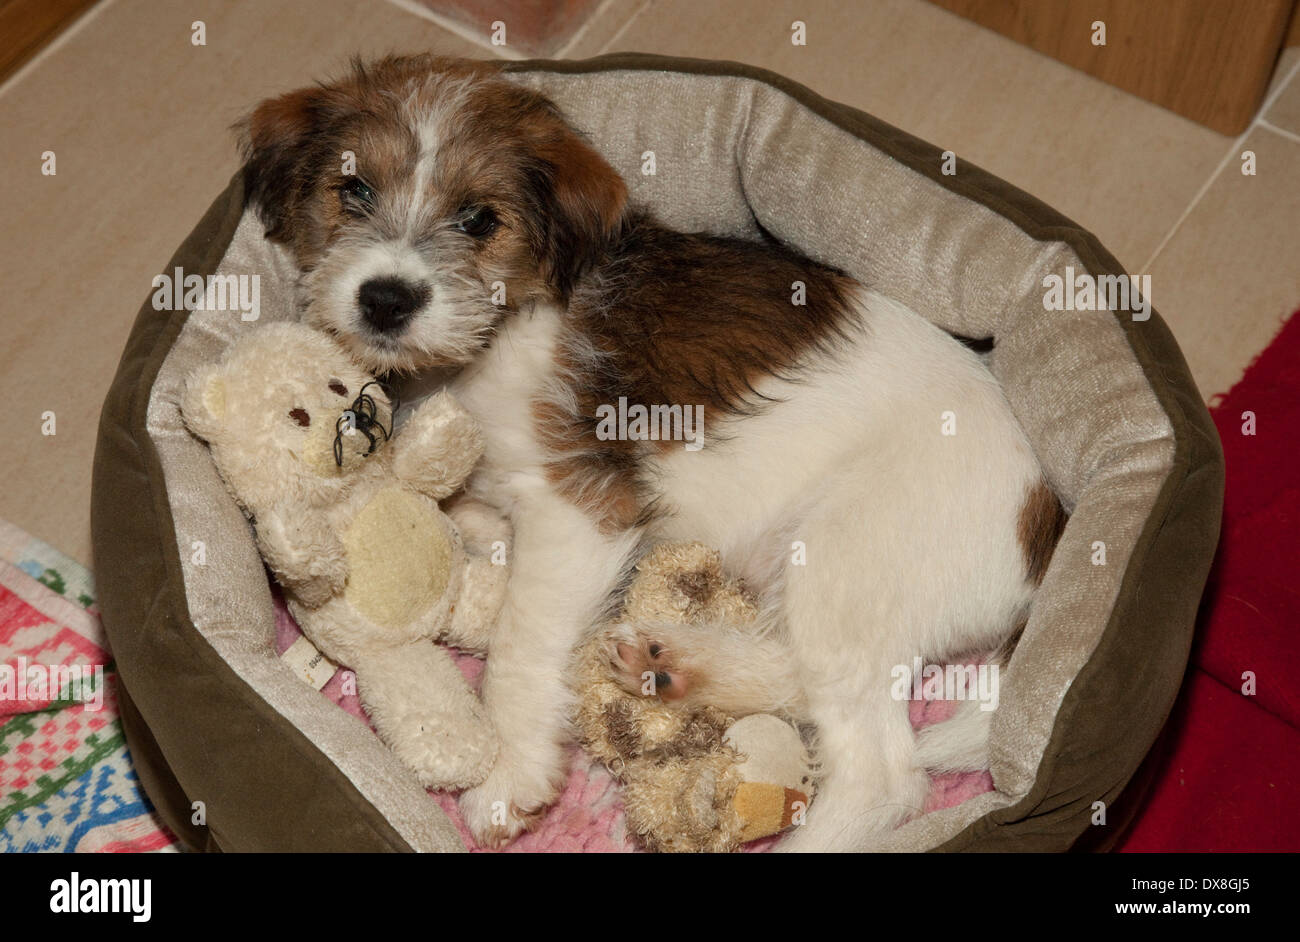 Brown & white Border terrier puppy in dog bed UK - Stock Image